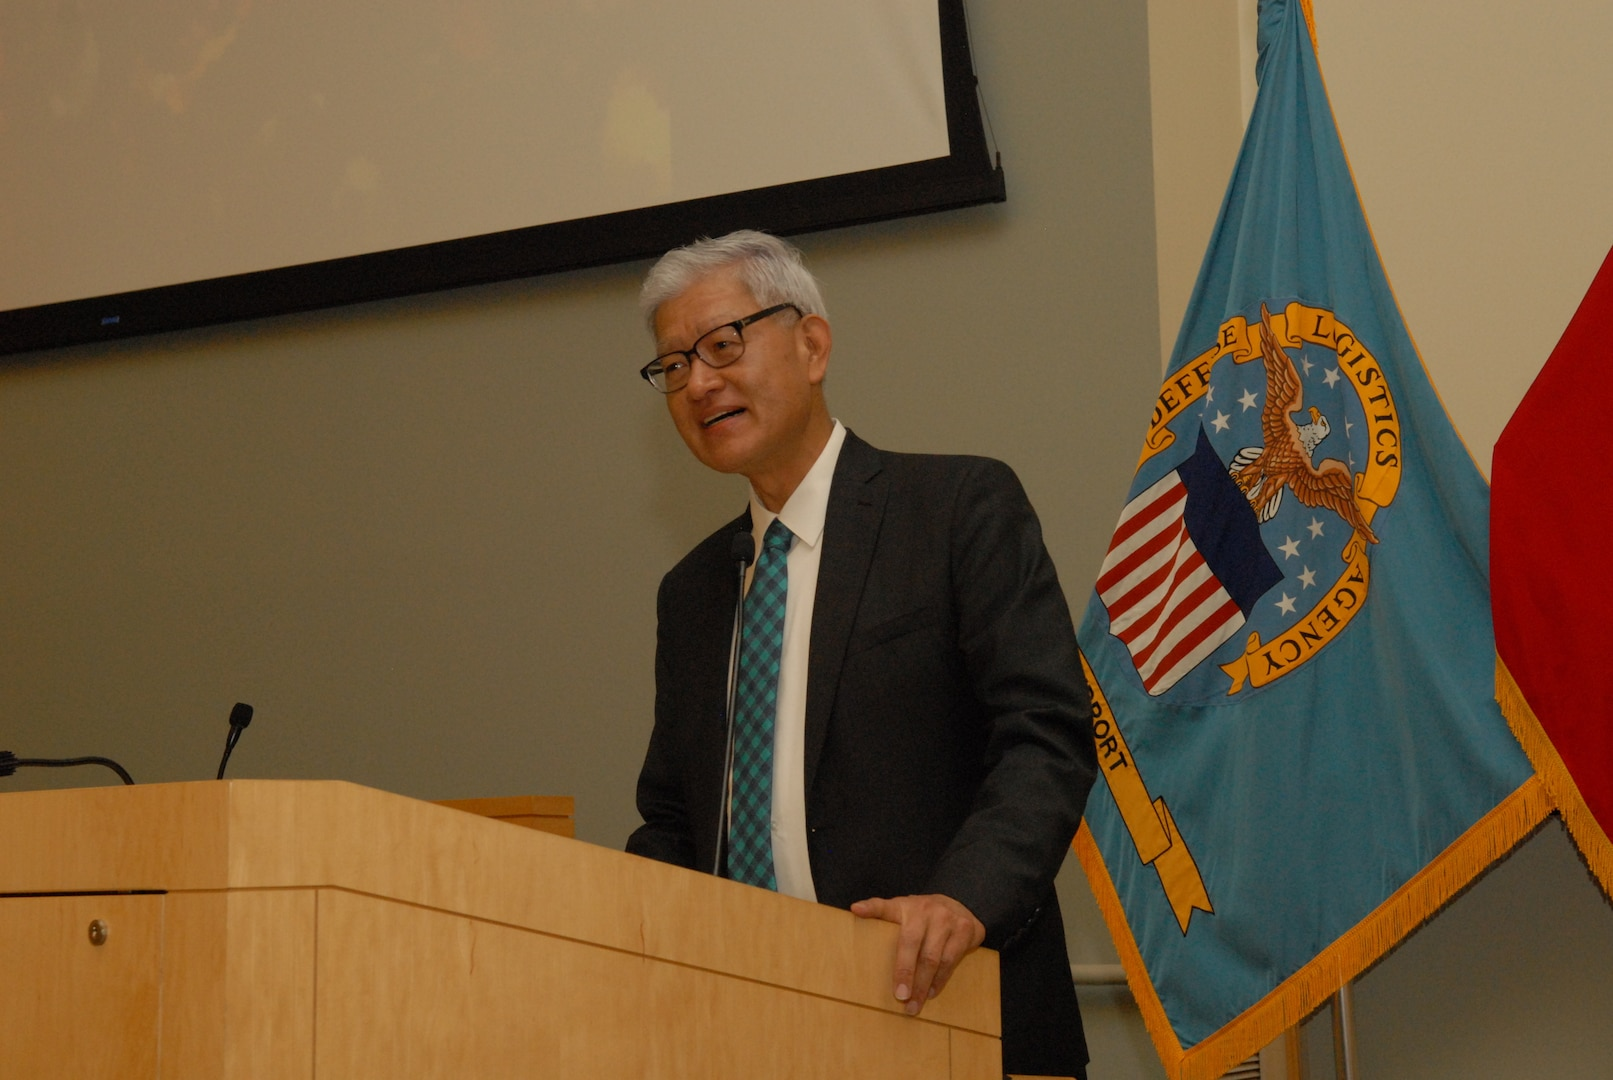 Architect, engineer and entrepreneur Timothy Haahs speaks to DLA Troop Support and NAVSUP Weapons Systems Support employees during an Asian American Pacific Islander Heritage Month event in Philadelphia May 24, 2018. Haahs discussed his experiences growing up in a leper colony in South Korea, coming to the U.S. when he was 12 years old, receiving two heart transplants and becoming a U.S. Senate-confirmed appointee to the Board of Directors of the National Institute of Building Sciences.